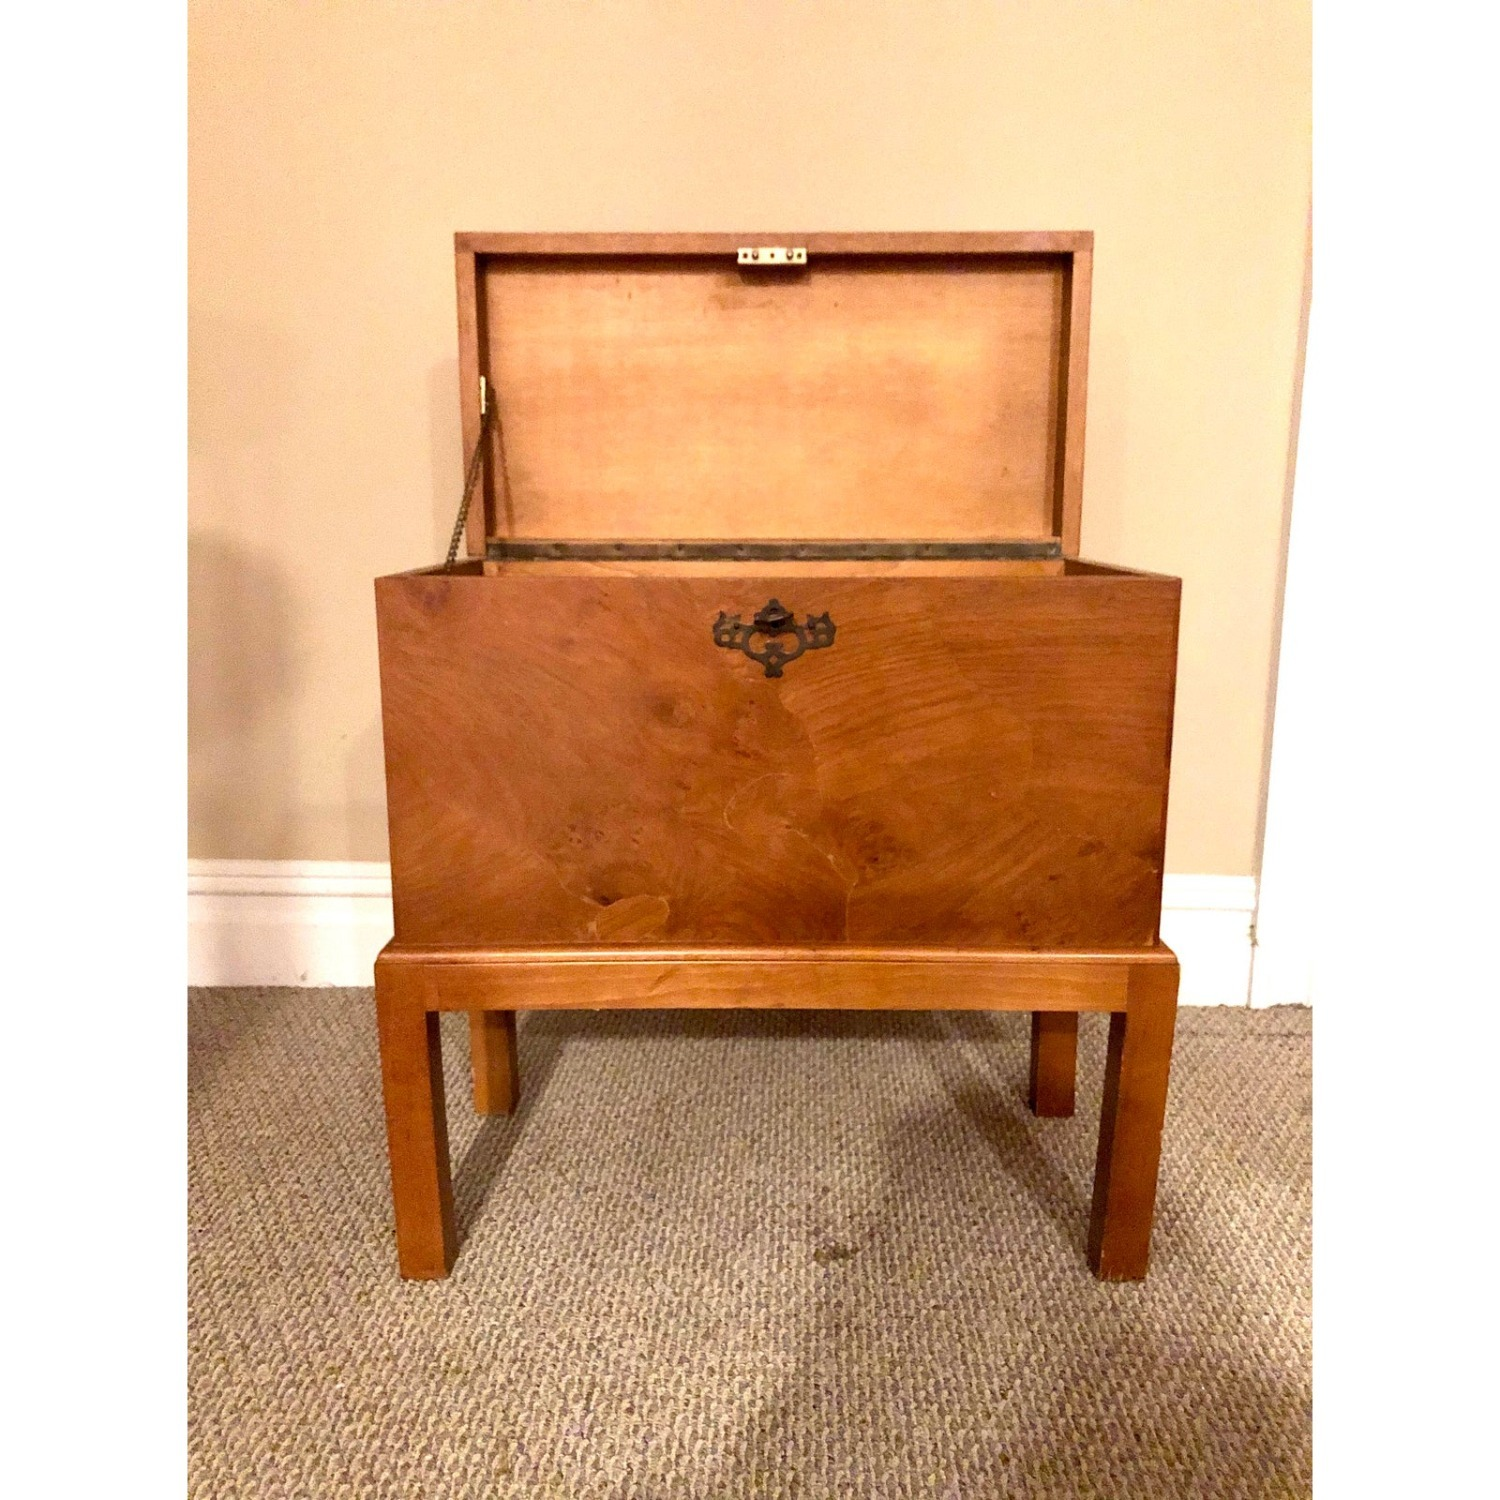 Vintage Wooden Keyhole Chest on Legs - image-2